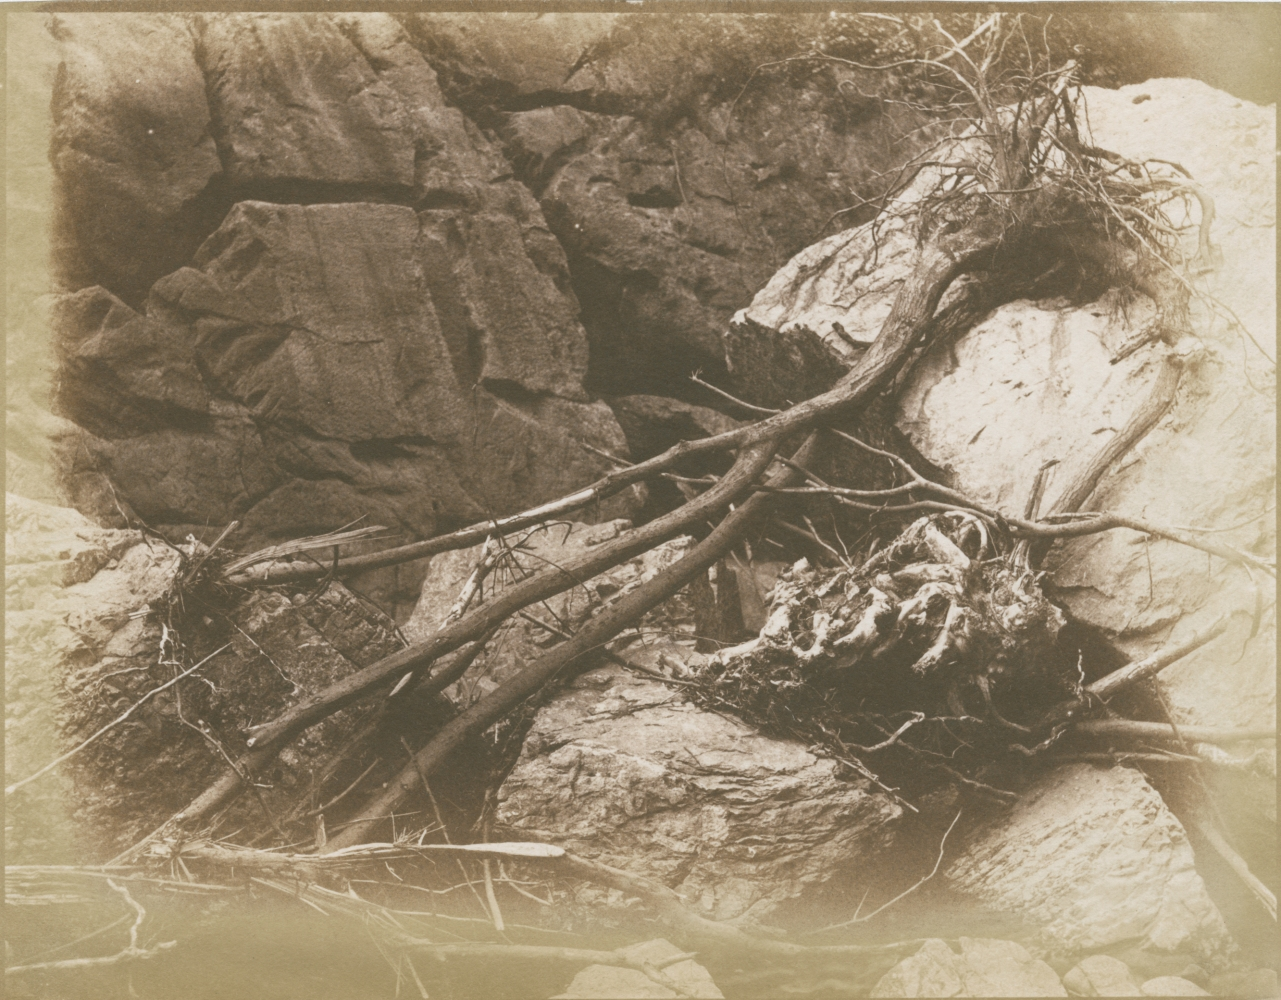 Hugh OWEN (English, 1808-1897) Branches and roots in dry riverbed, circa 1850 Salt print from a paper negative 17.3 x 22.4 cm image on 17.7 x 22.7 cm paper